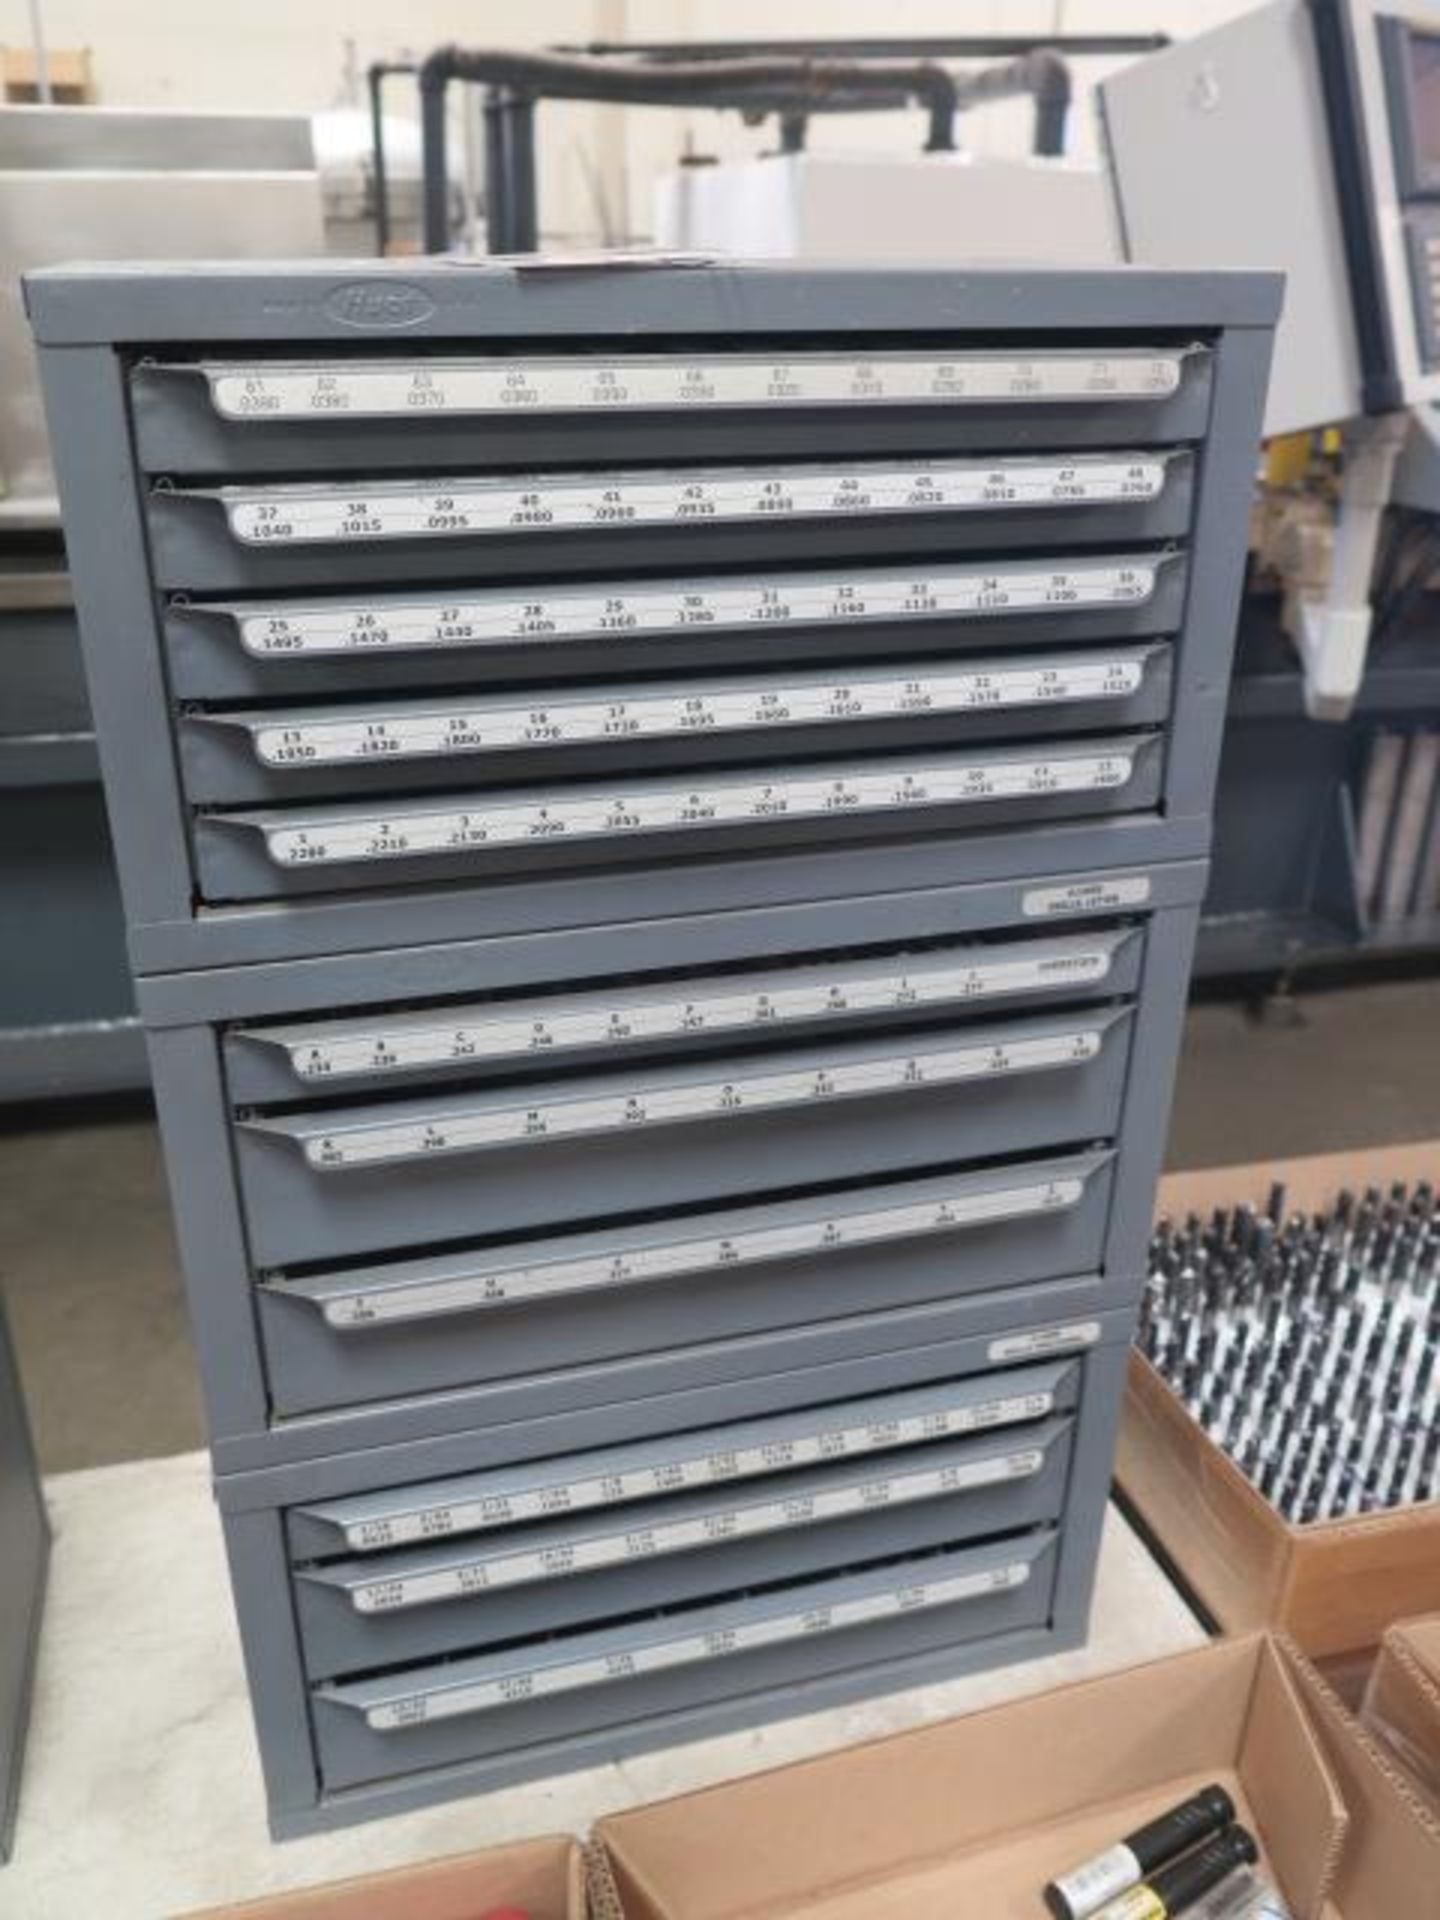 Huot Drill Cabinets (3) w/ Drills (SOLD AS-IS - NO WARRANTY)